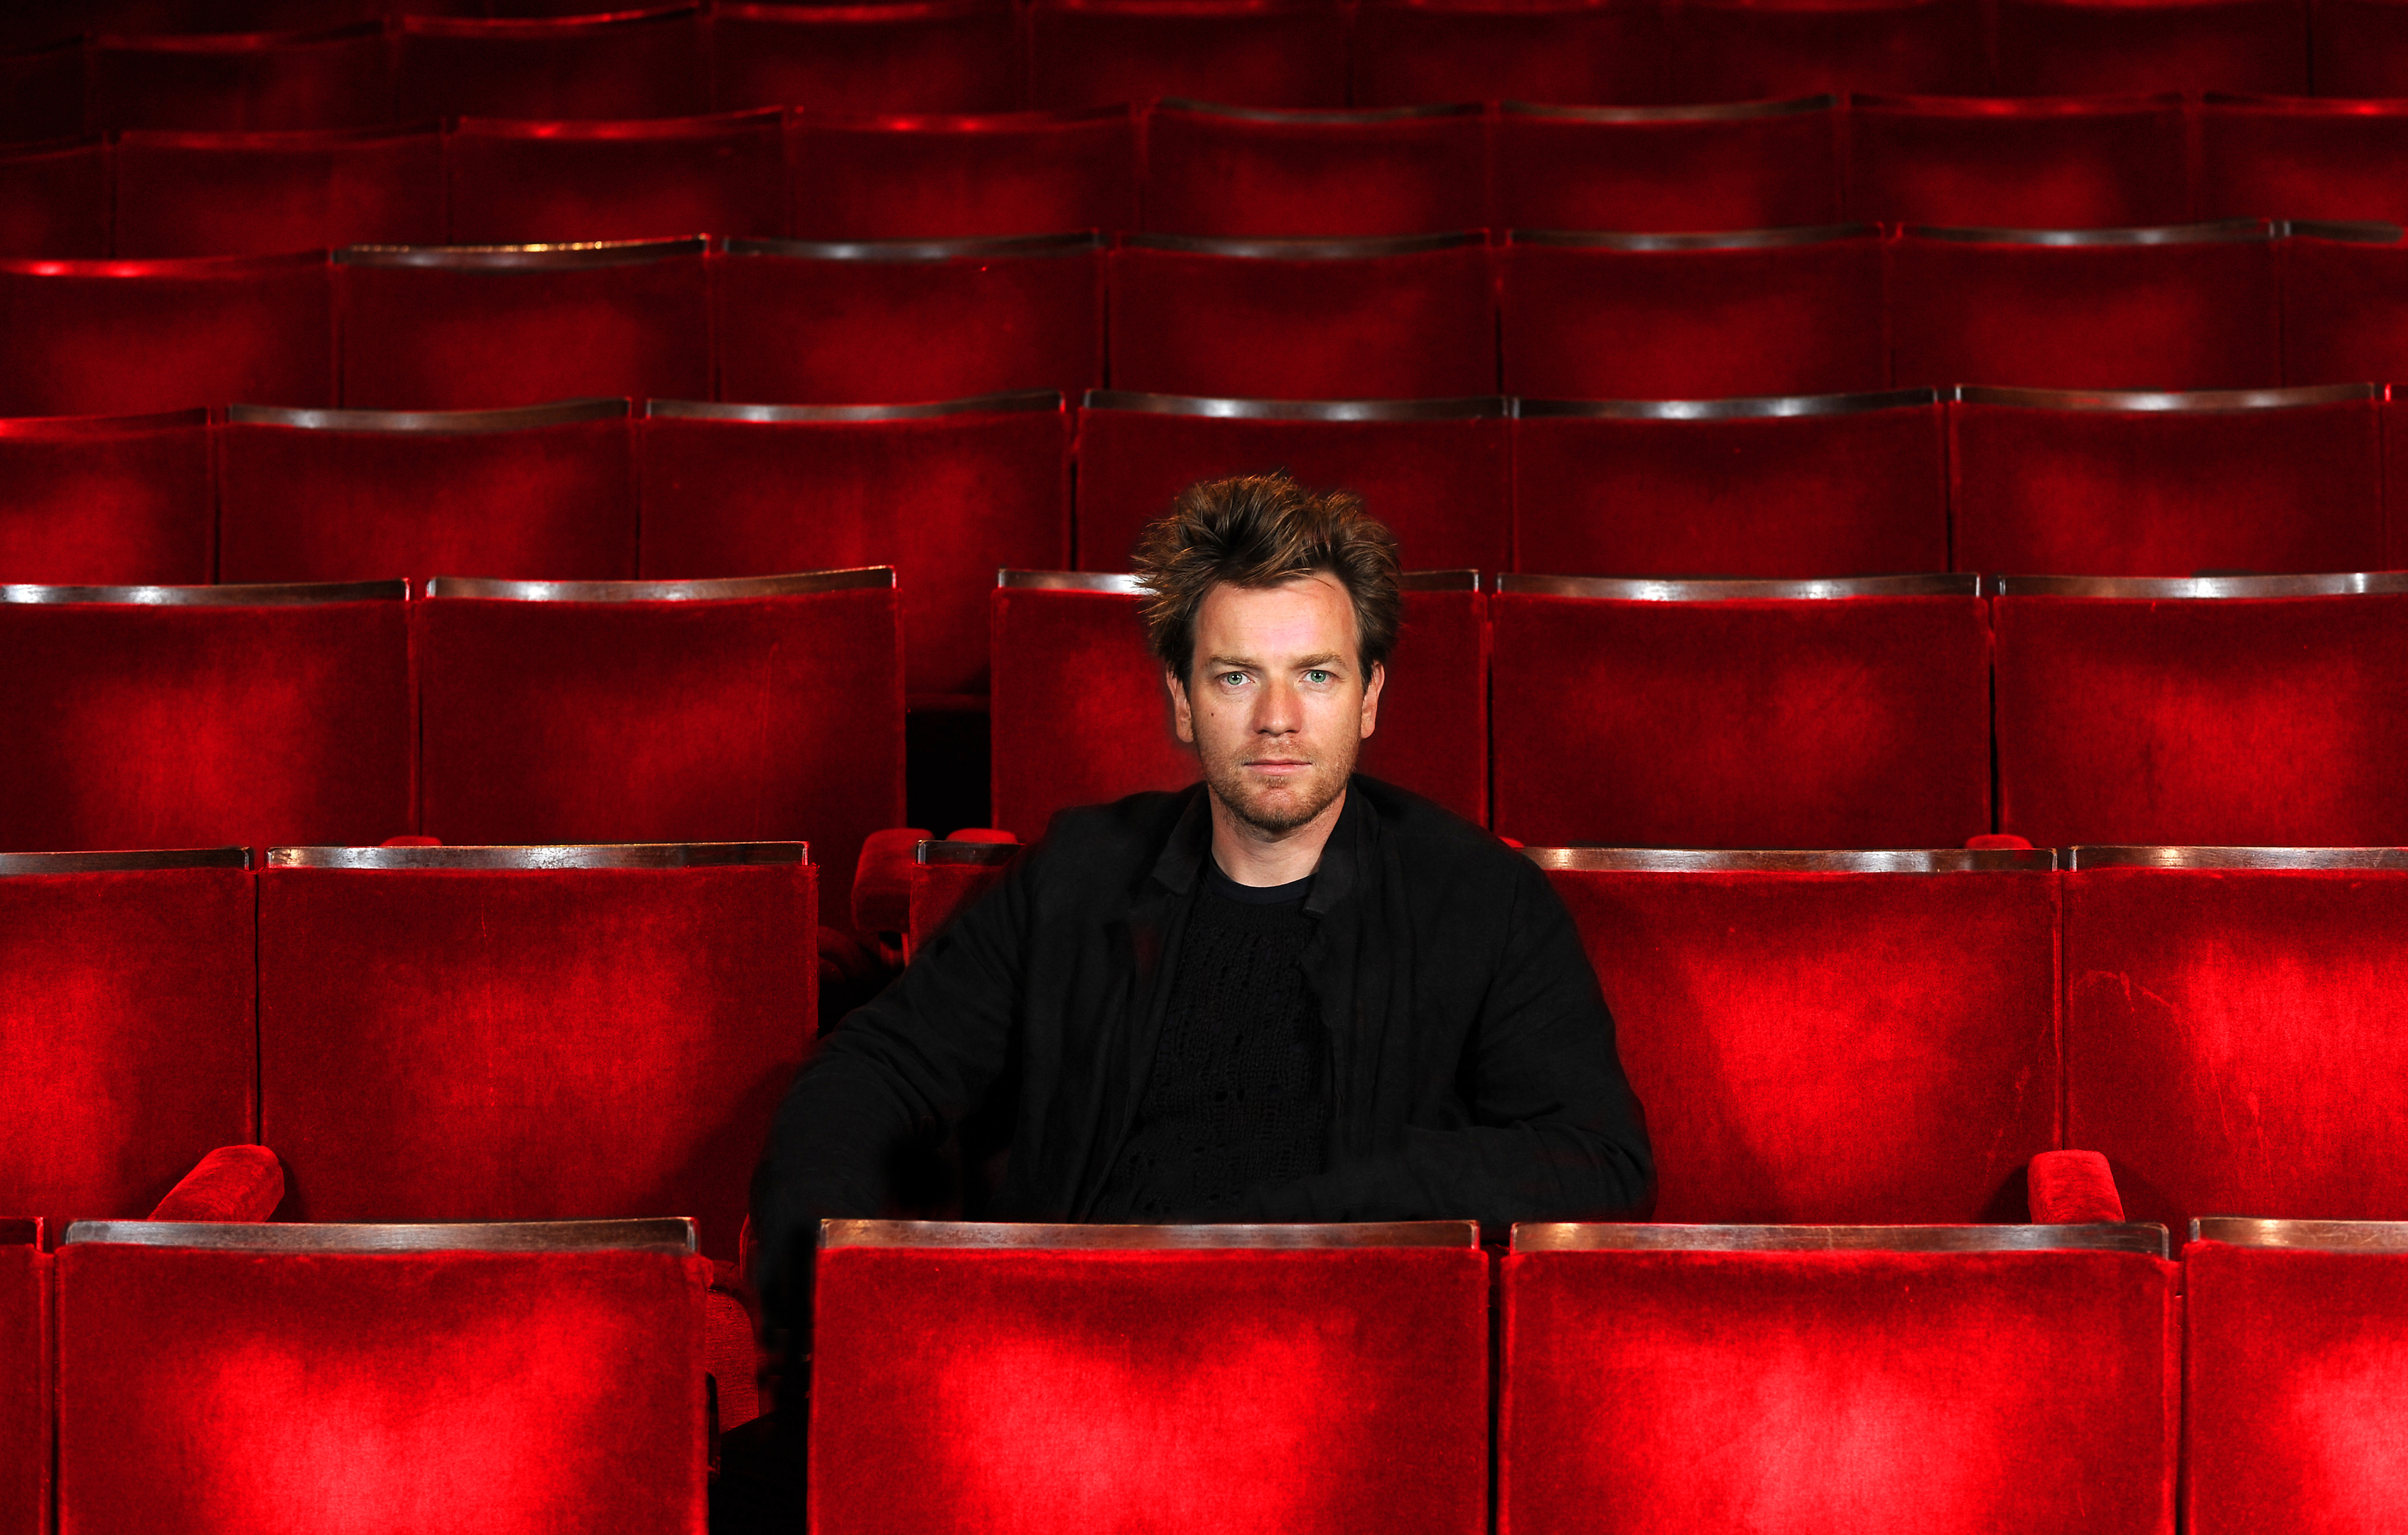 Ewan McGregor at Perth Theatre.